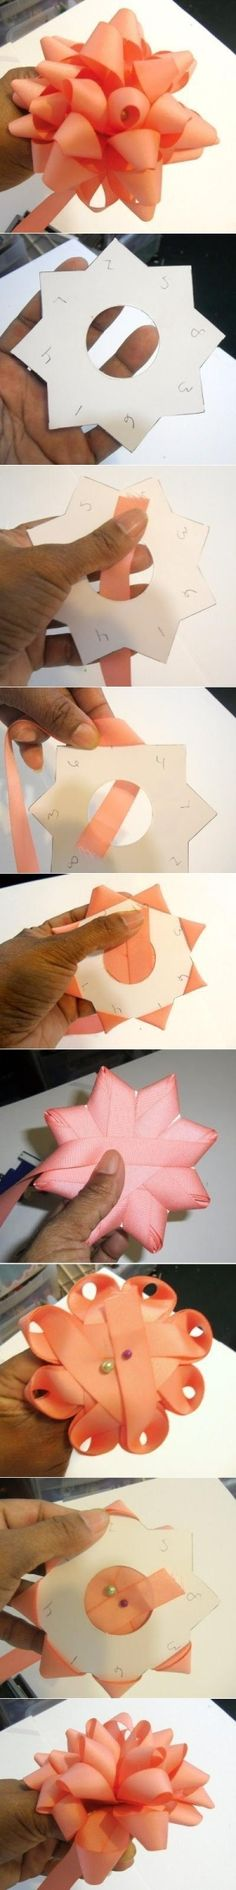 DIY Bow of Ribbon DIY Bow of Ribbon by diyforever